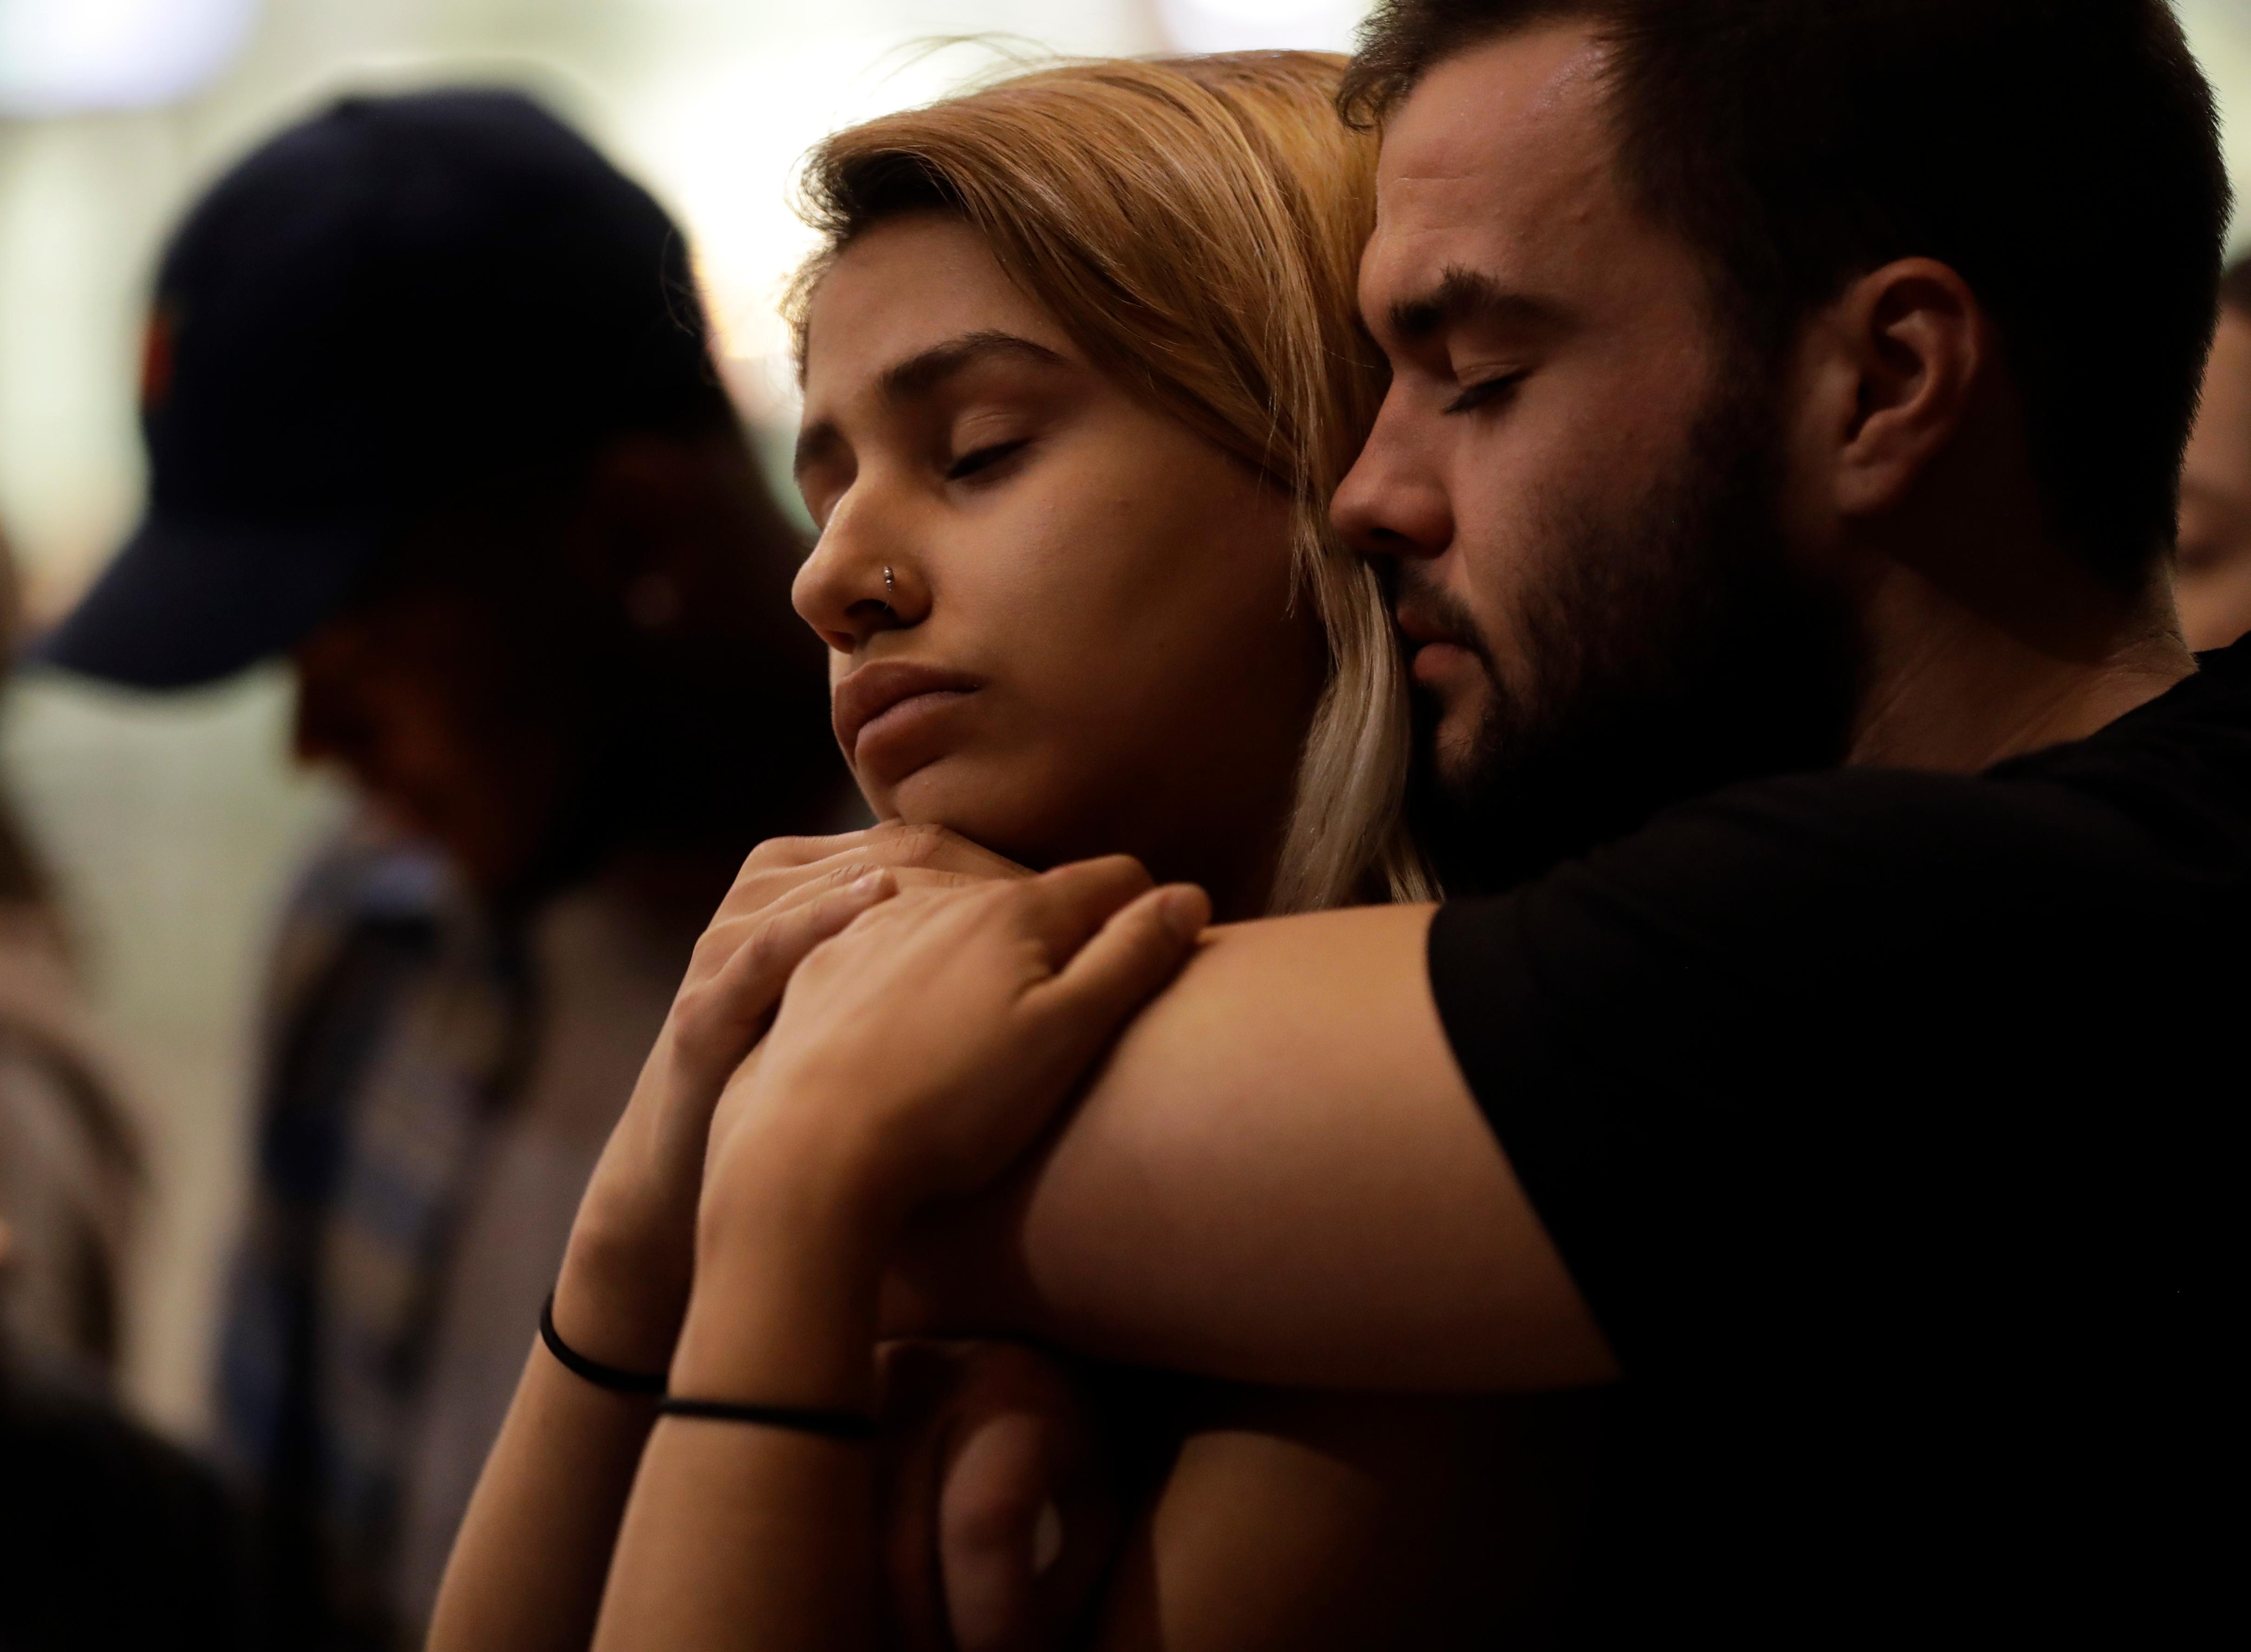 University of Nevada Las Vegas students Raymond Lloyd, right, and Karla Rodriguez take part in a vigil Monday, Oct. 2, 2017, in Las Vegas. A gunman on the 32nd floor of the Mandalay Bay casino hotel rained automatic weapons fire down on the crowd of over 22,000 at an outdoor country music festival Sunday. (AP Photo/Gregory Bull)